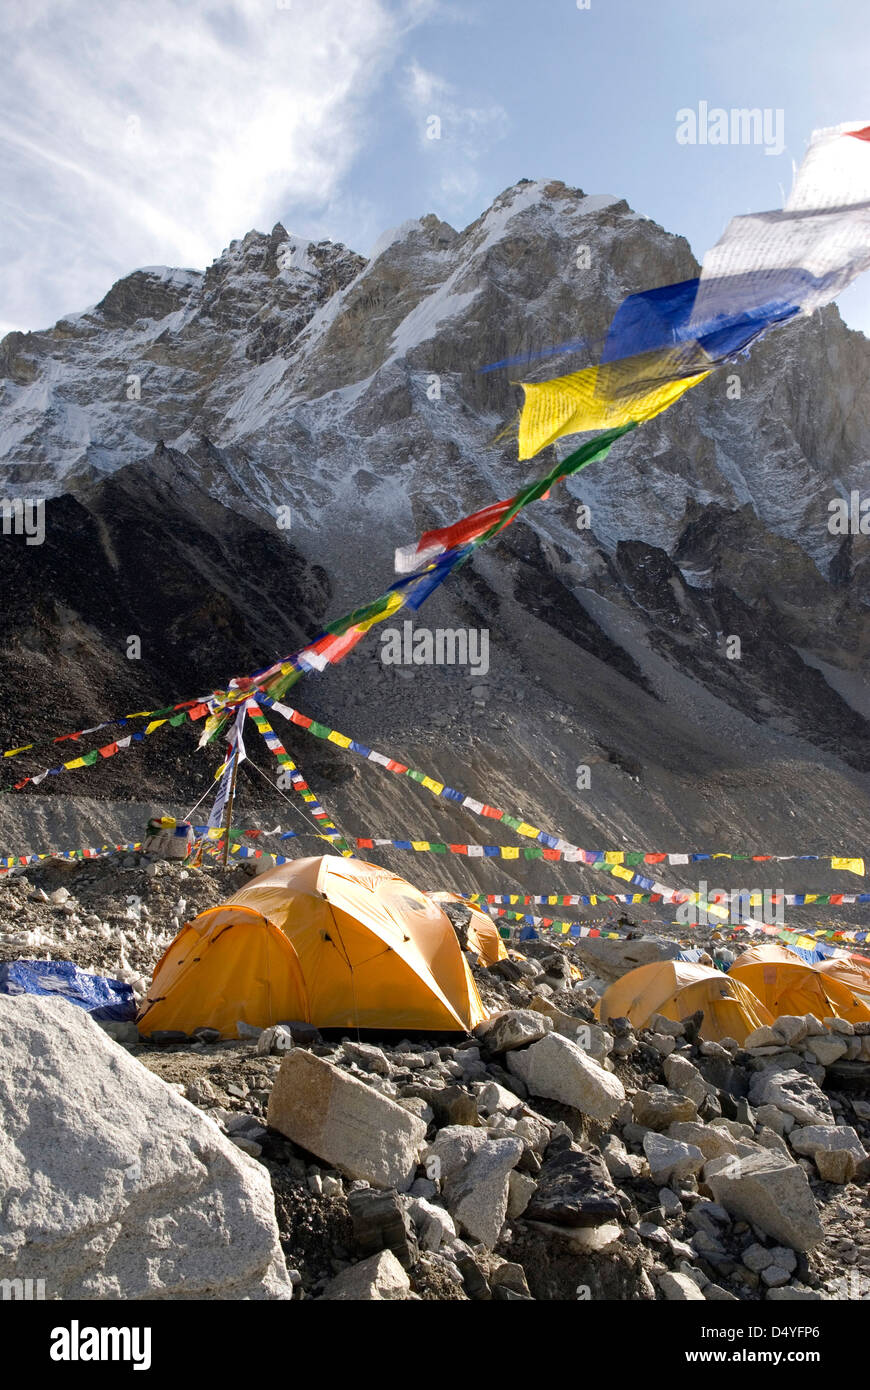 Nepal, Mount Everest. The tents of mountaineers are scattered along the Khumbu Glacier at Base Camp. - Stock Image